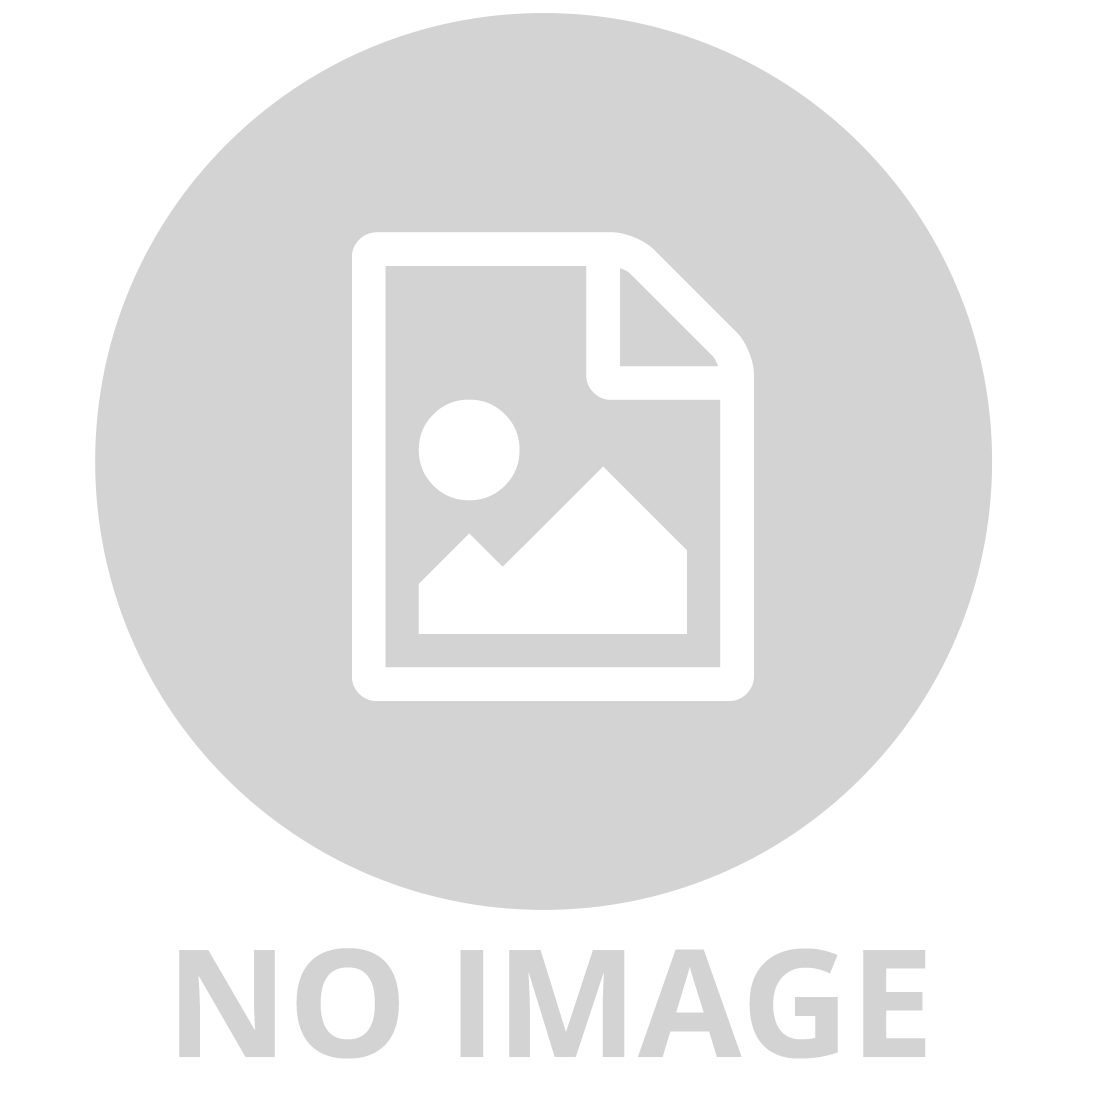 RAVENSBURGER DAY AT THE ZOO 35 PIECE JIGSAW PUZZLE